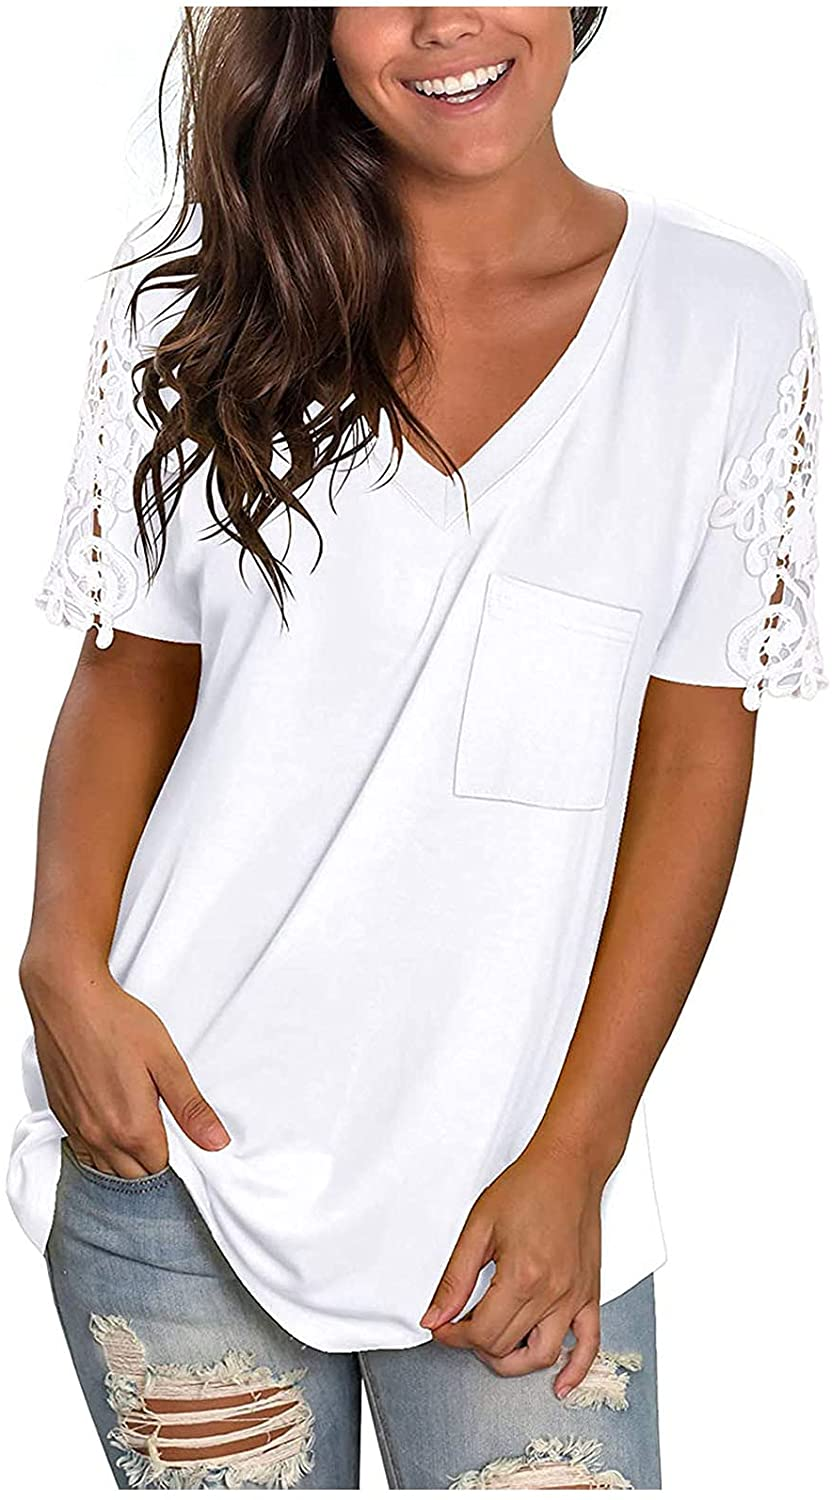 FABIURT Womens Summer Tops, Women Casual V Neck Floral Printed T-Shirt Lace Trim Top Shirts Short Sleeve Blouse Tee Tops